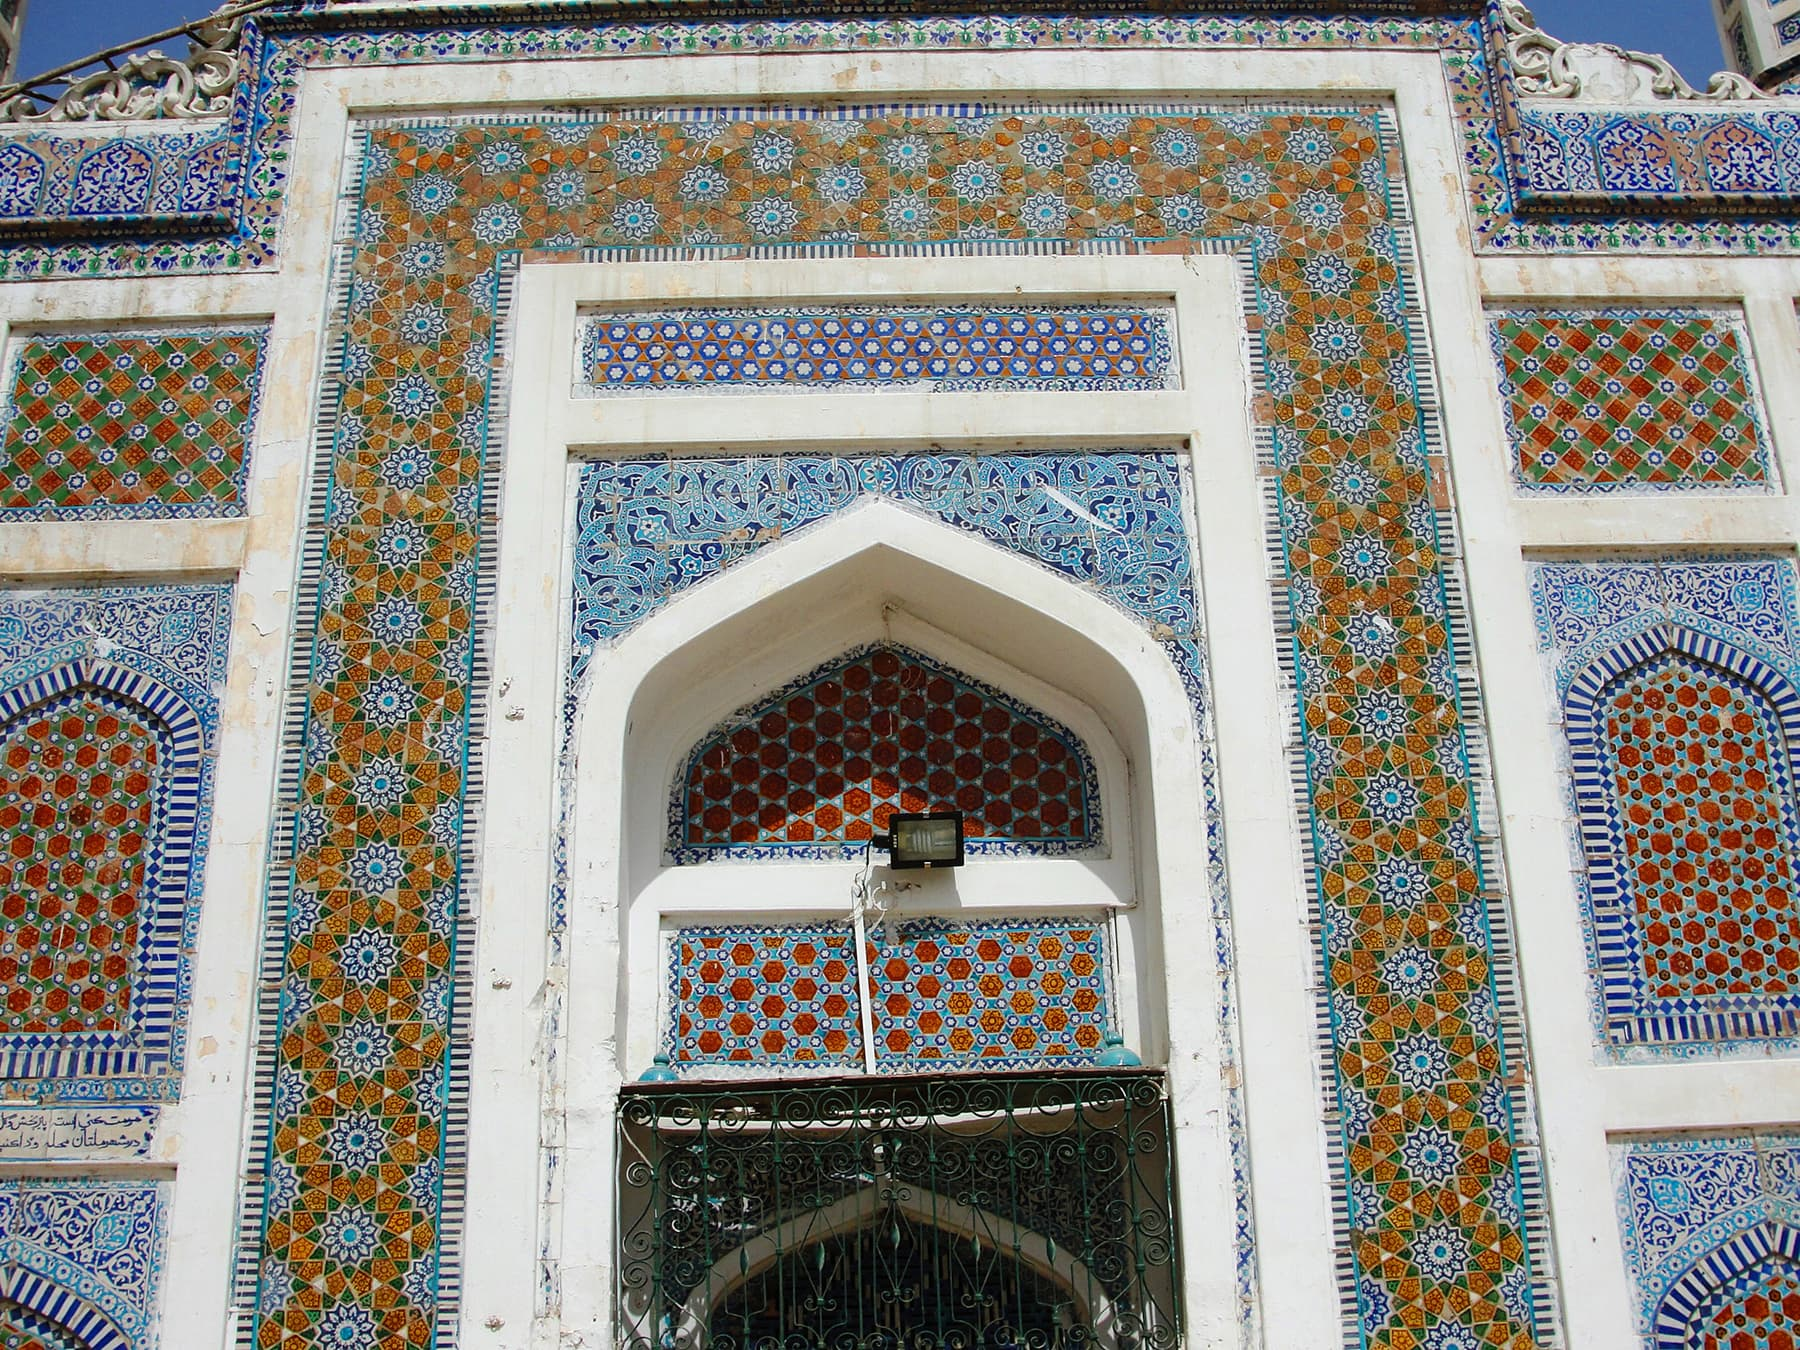 The facade of Shaikh Birkhio's tomb, covered with glazed tiles.